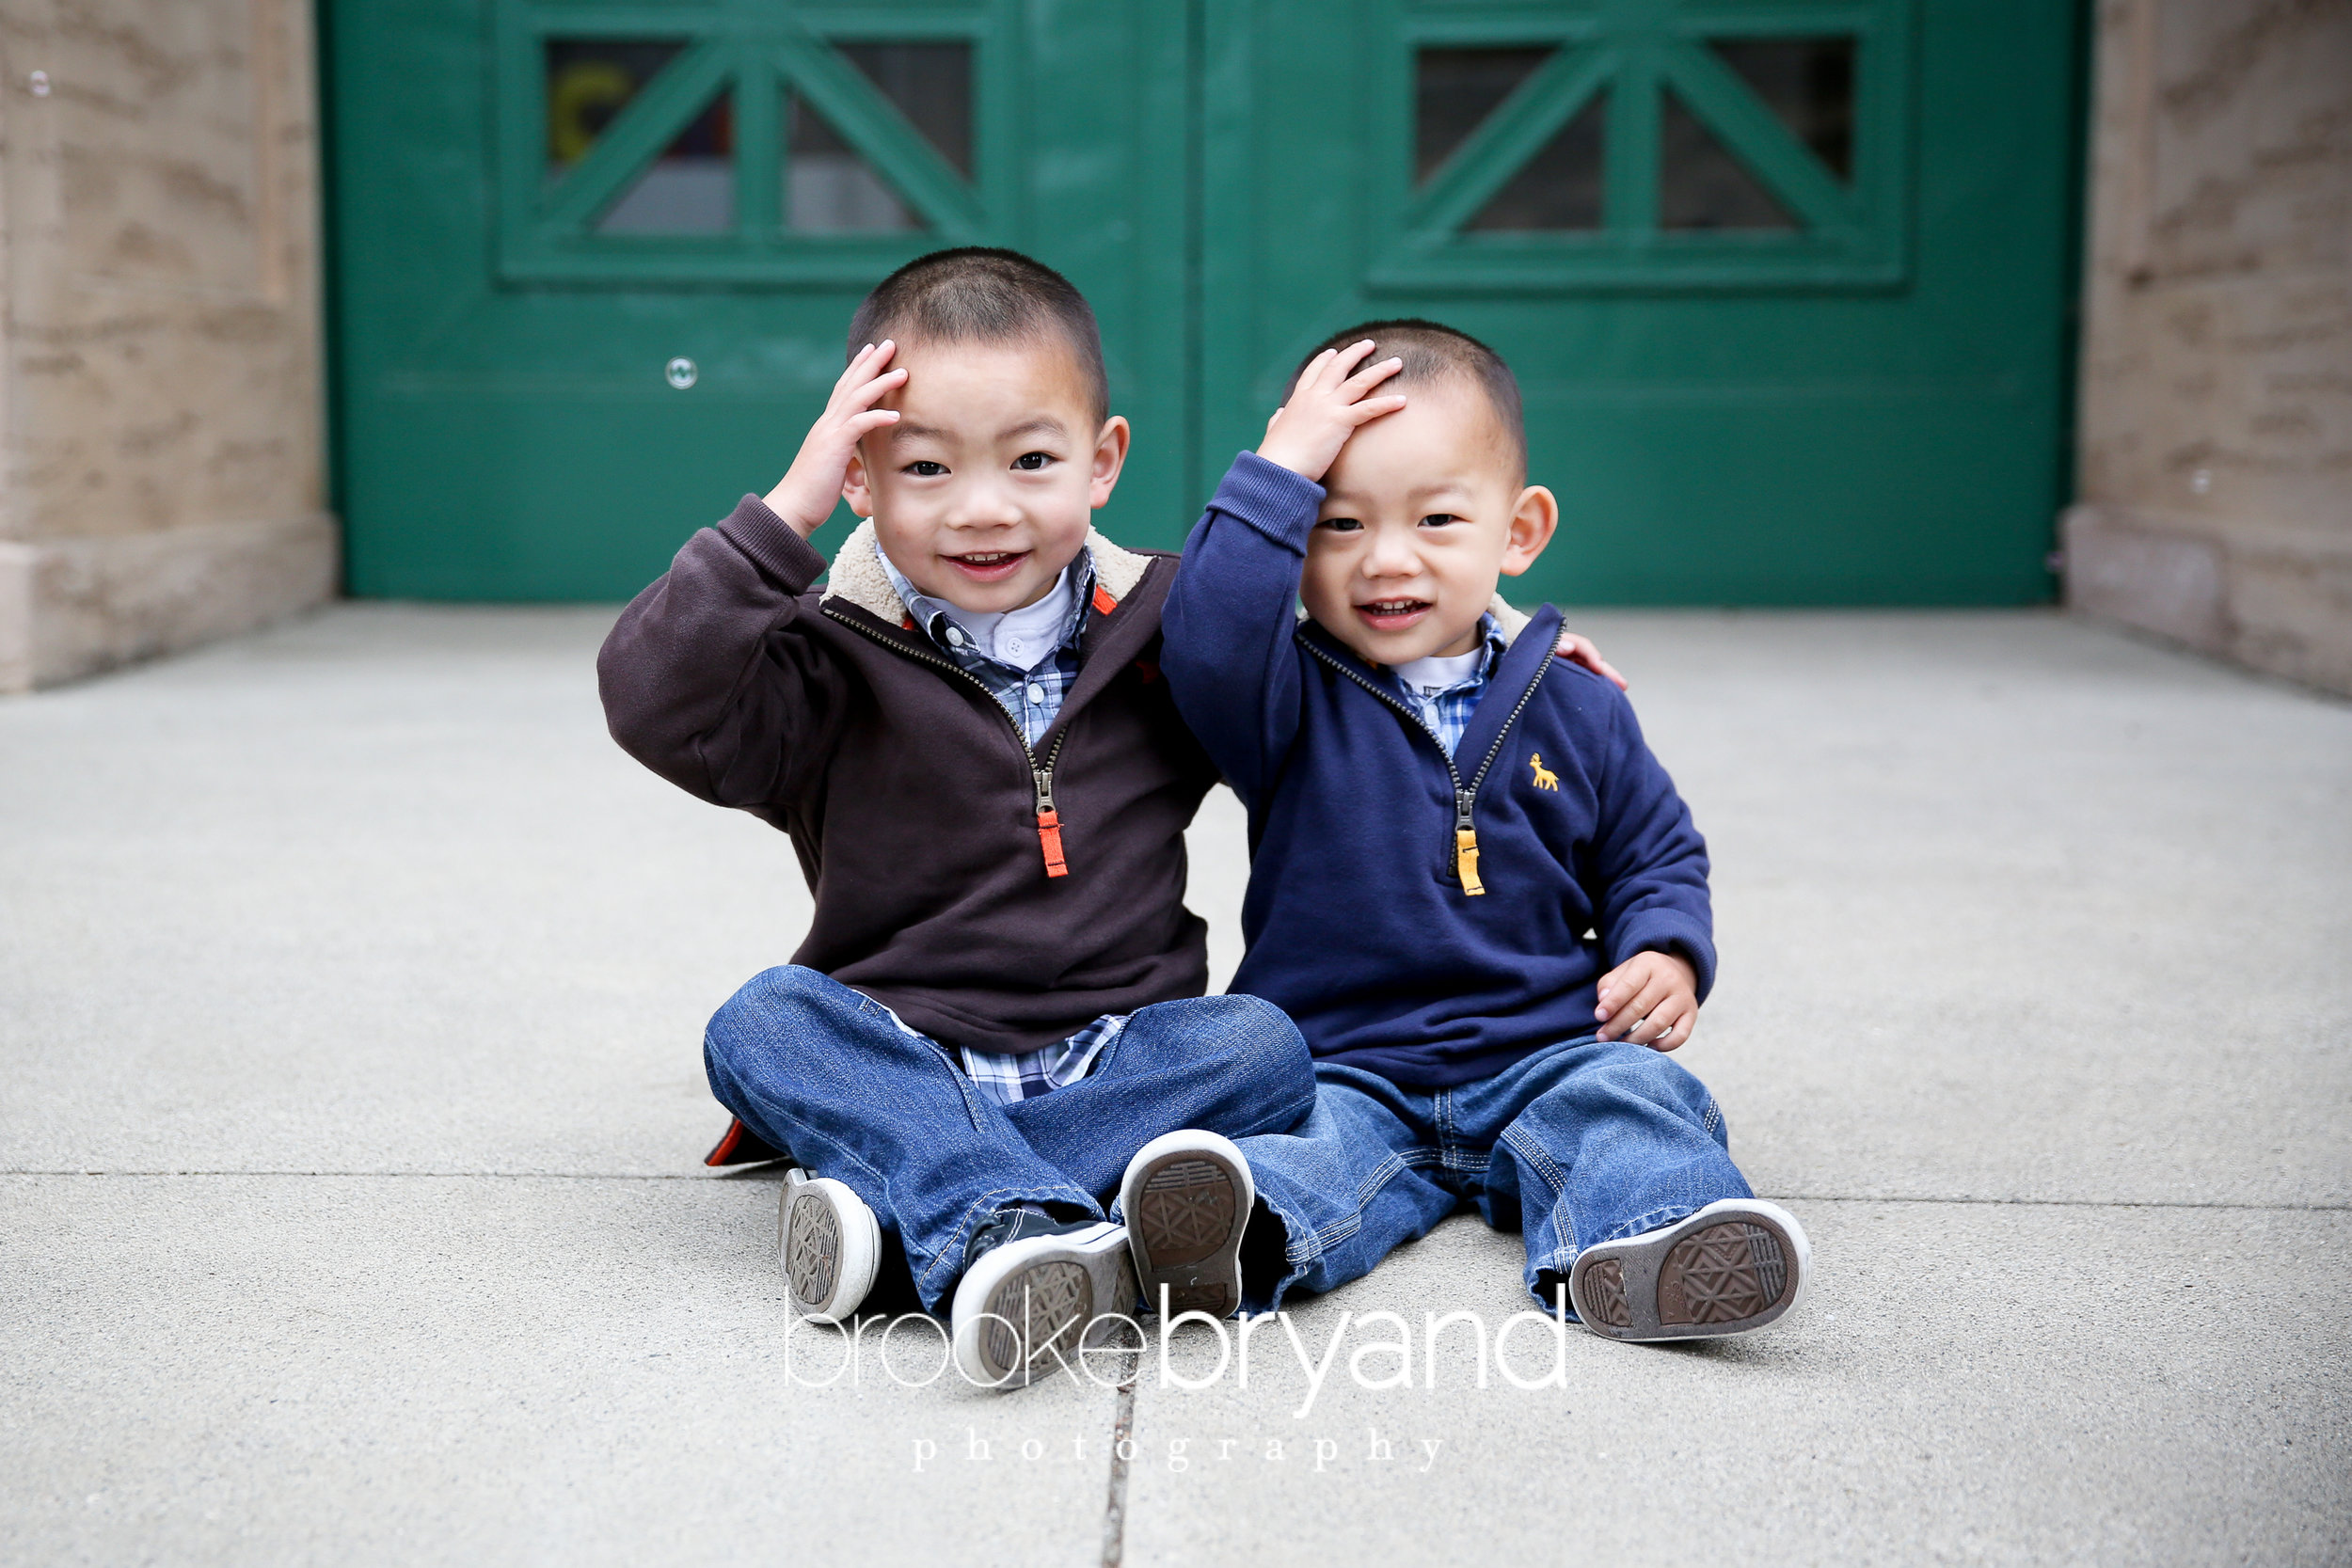 09.2013-Lau-Brooke-Bryand-Photography-Presidio-Family-Photos-Palace-of-Fine-Arts-Family-Photographer-BBP_6883.jpg